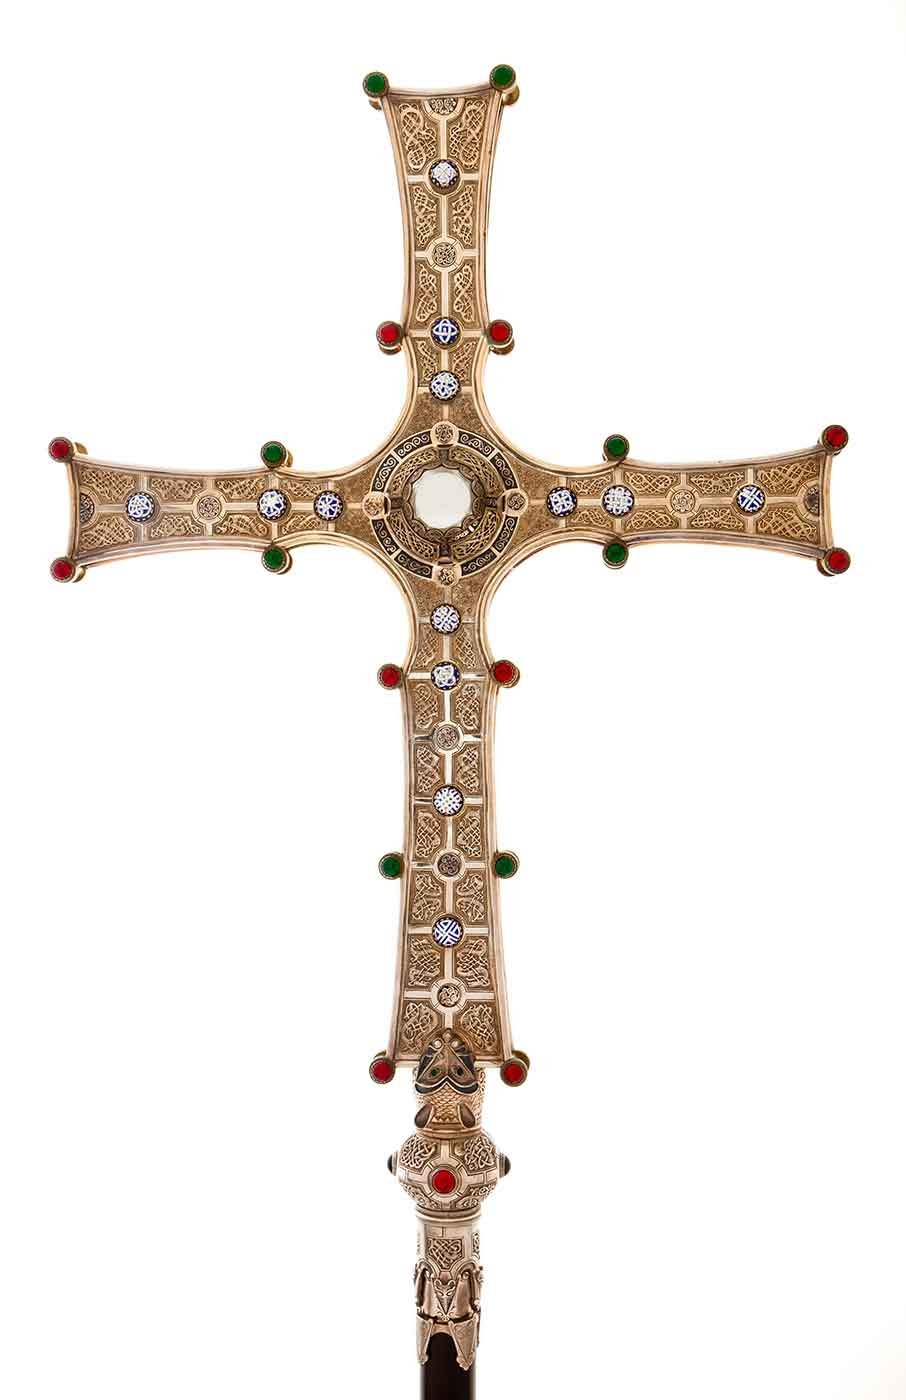 Golden cross with ornate Celtic design and gemstones. - click to view larger image